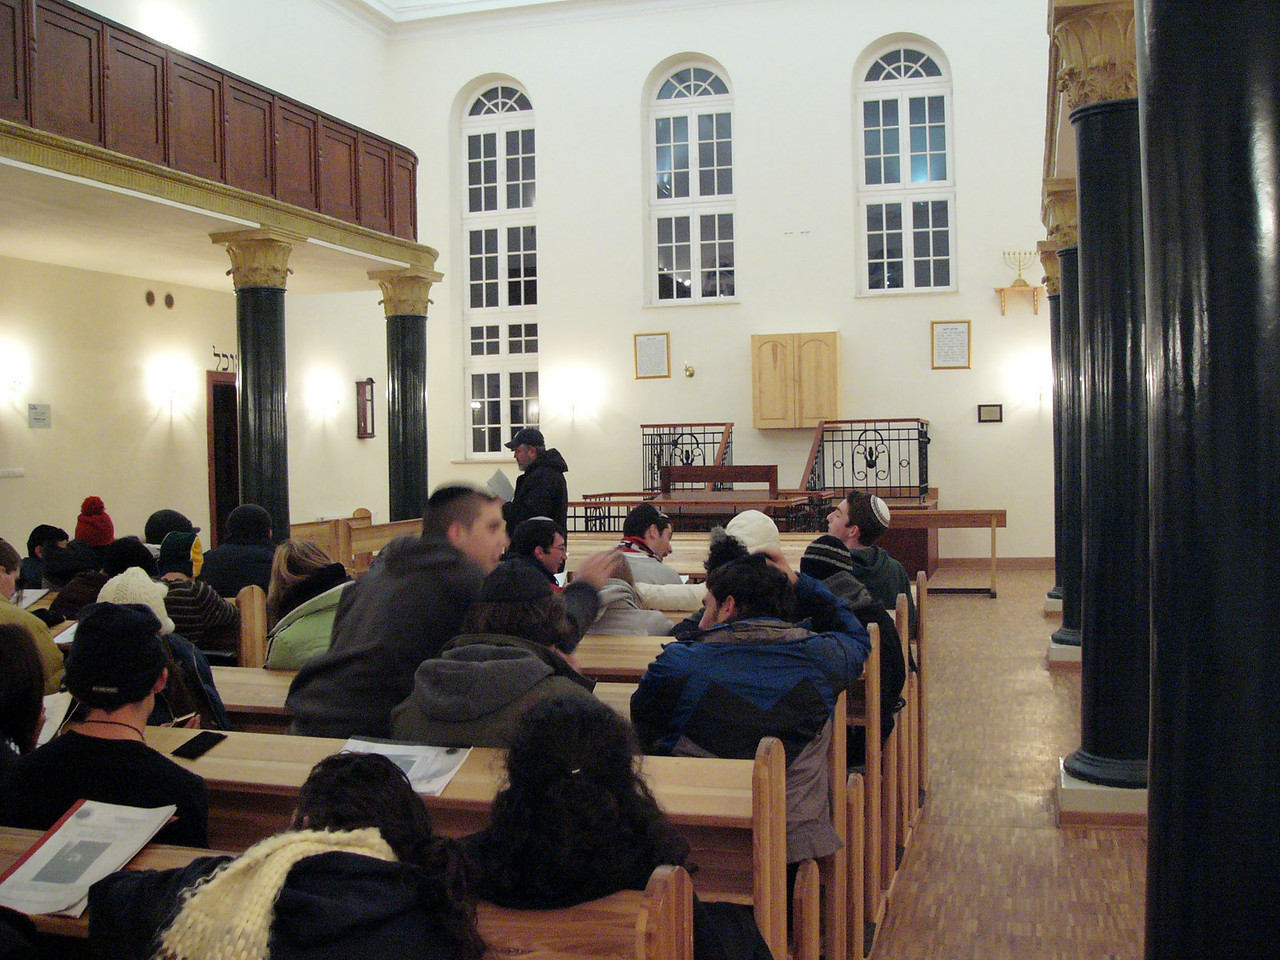 Renovated yeshiva in Lublin. Will there be students?